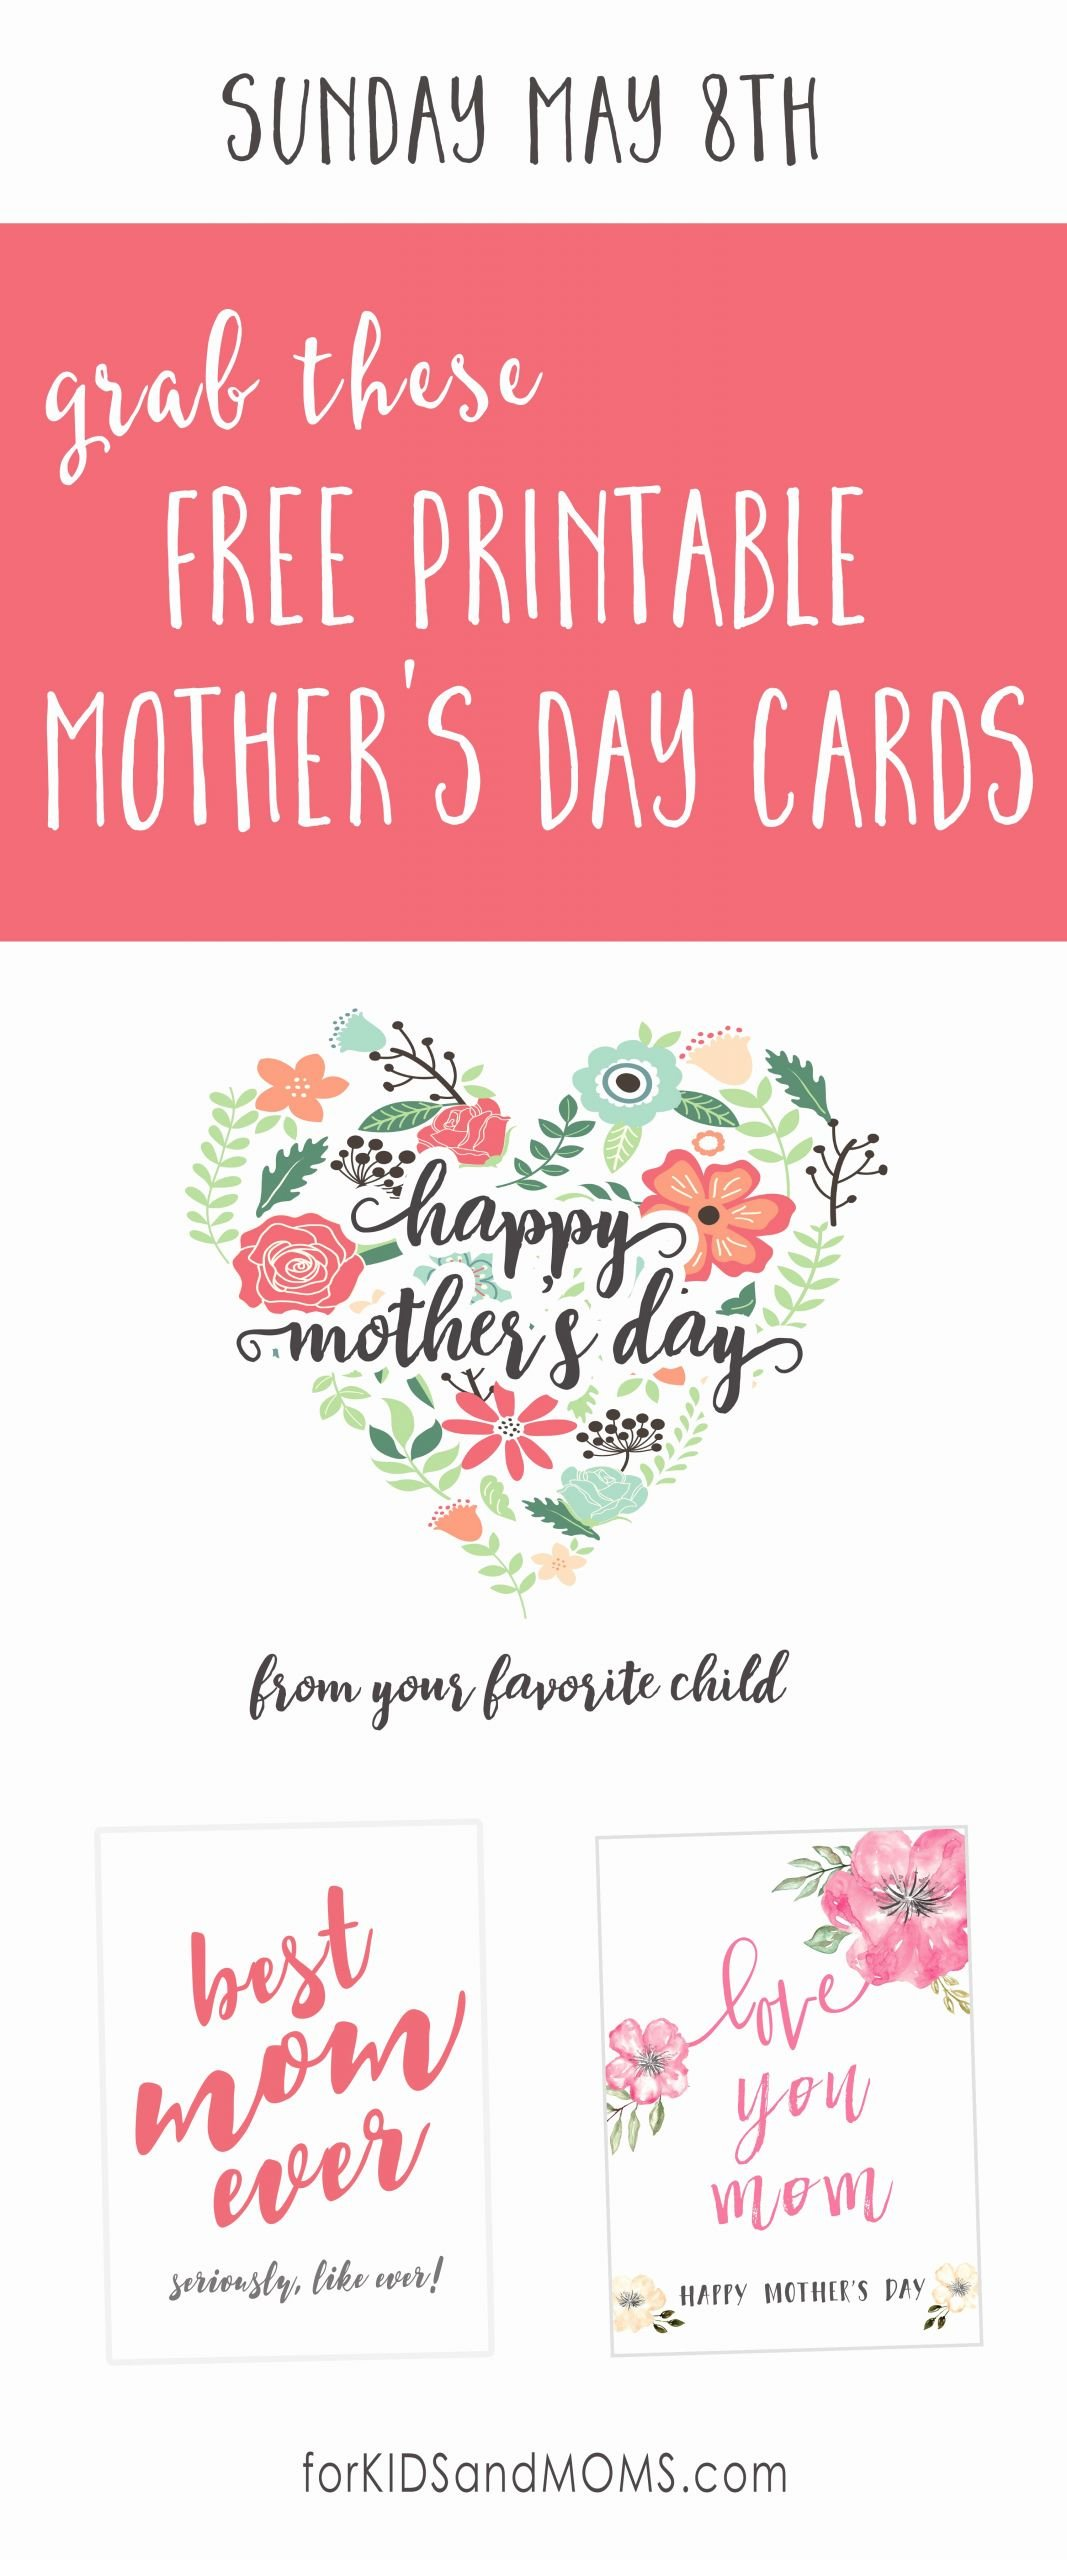 Mother's Day Certificates to Print Inspirational Free Printable Mother S Day Cards the Cottage Market